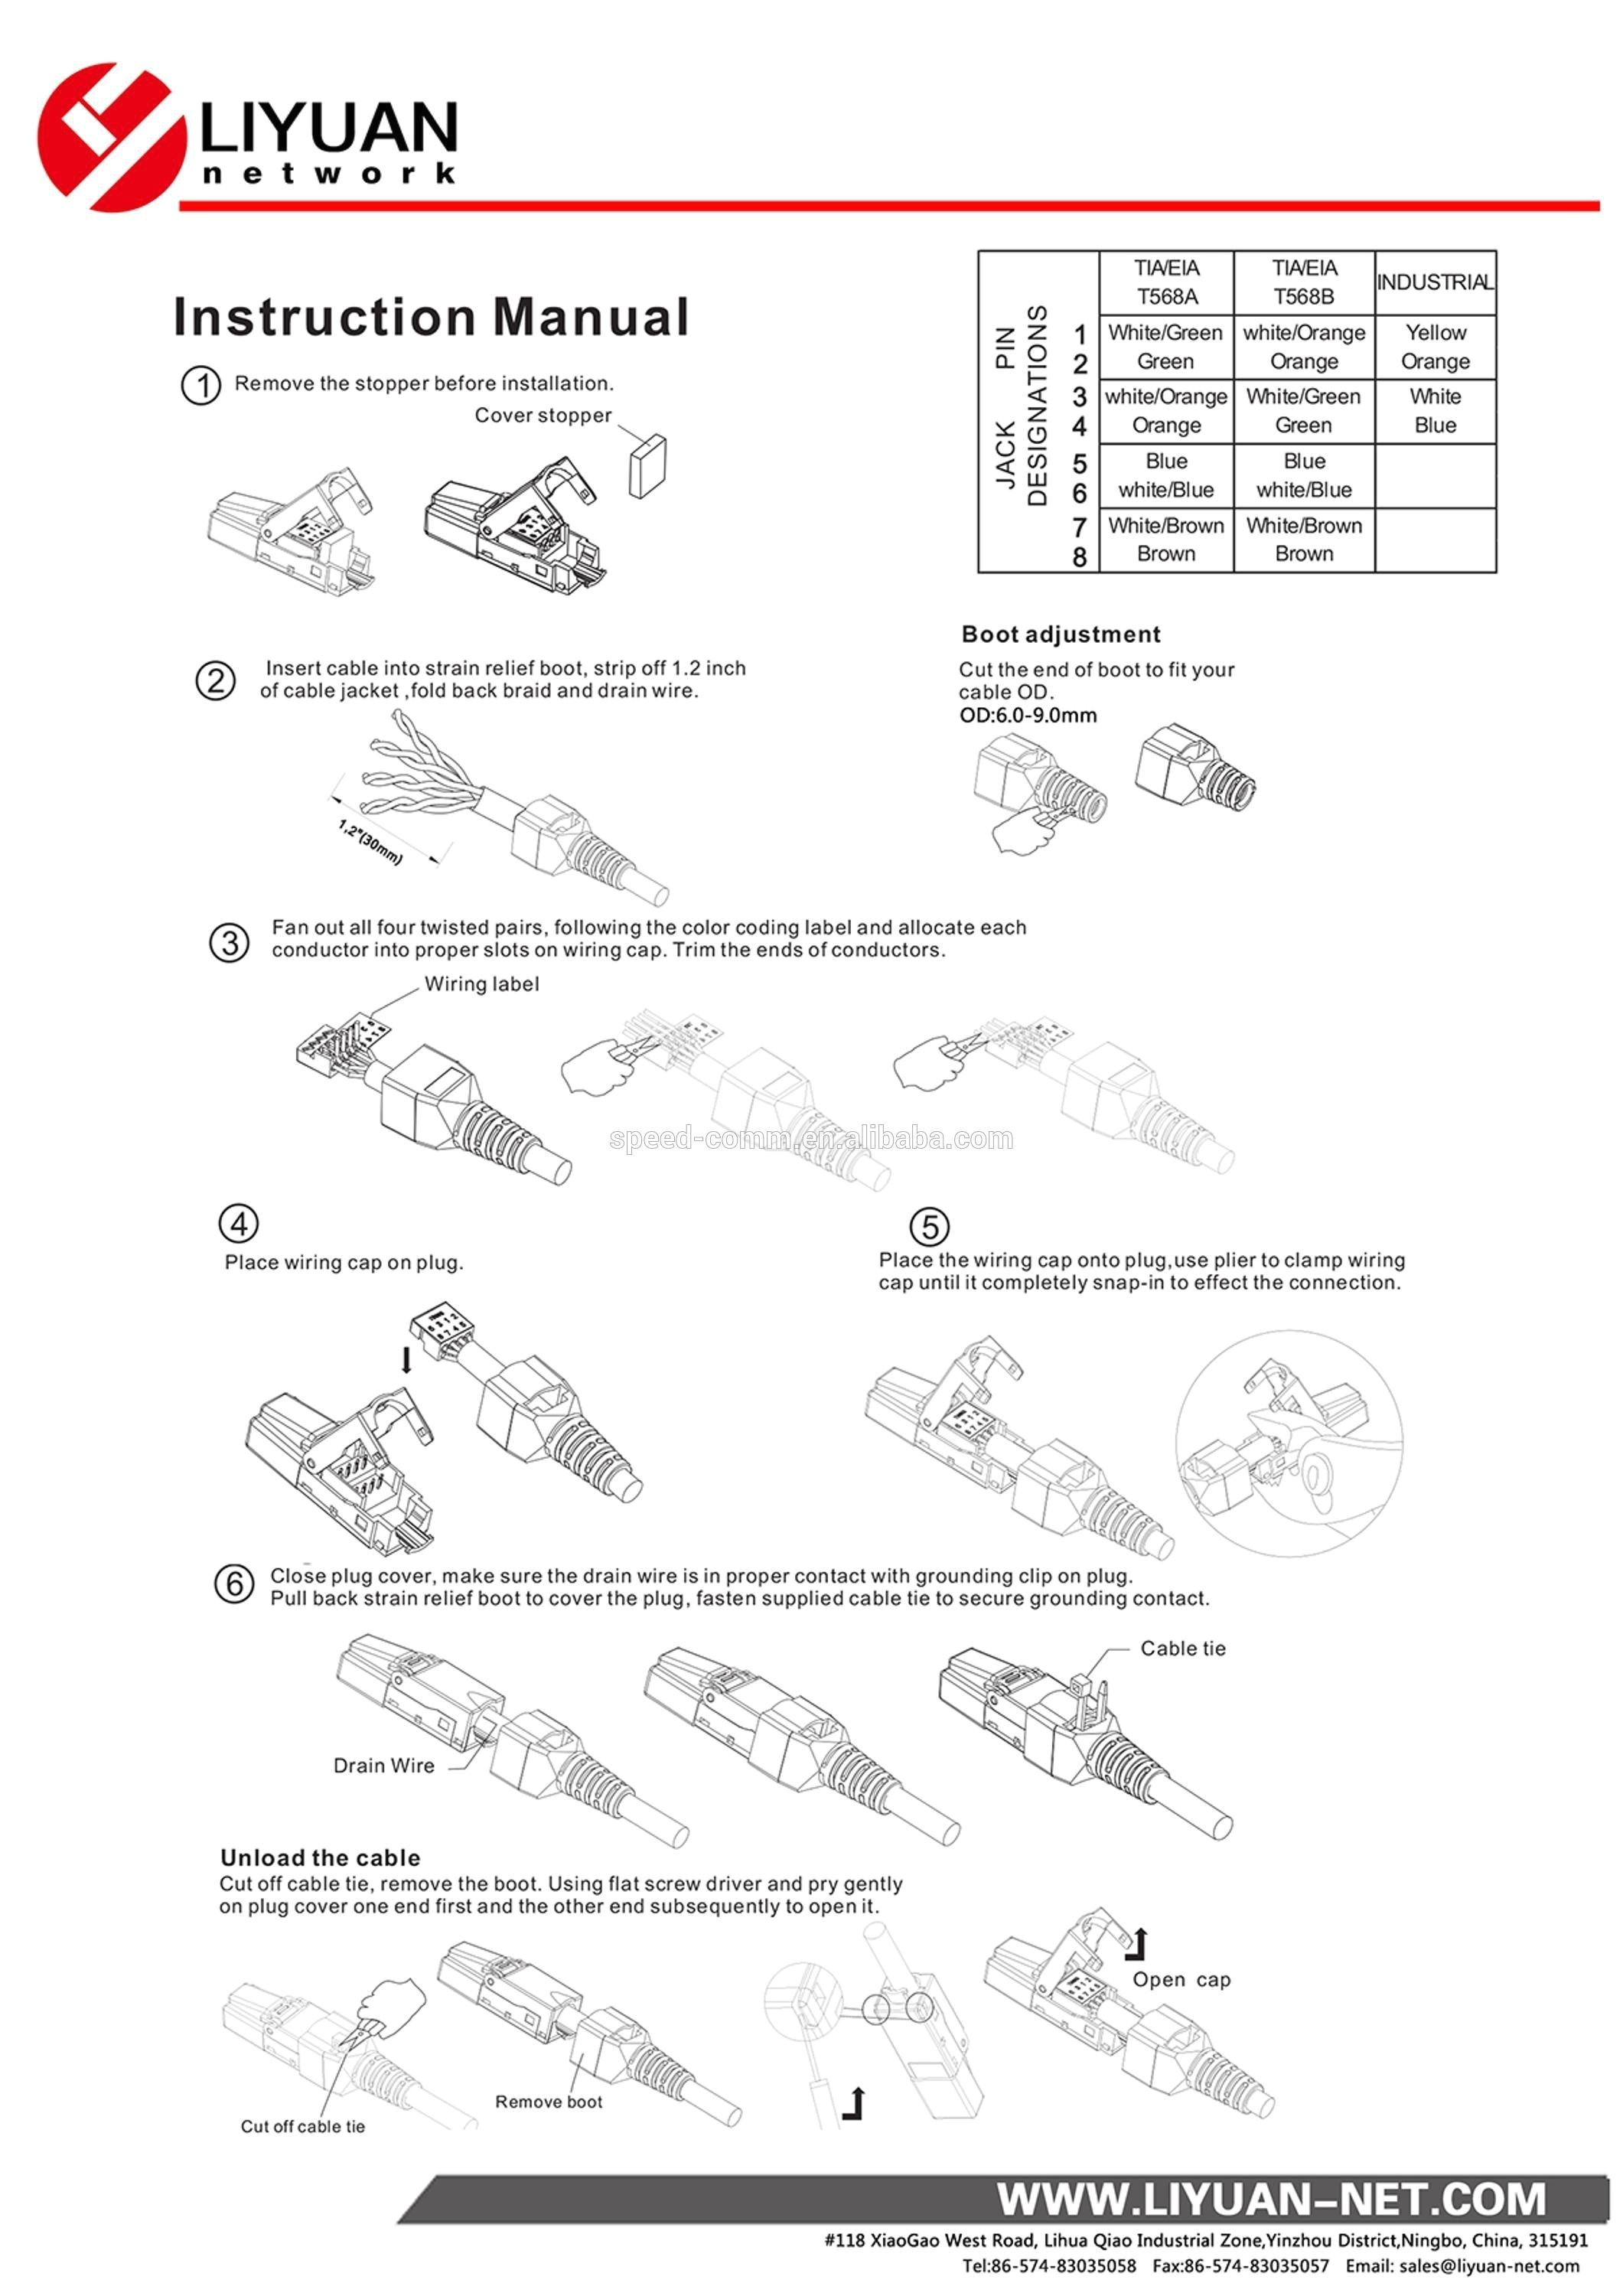 boot rj45 diagram wiring diagram blog boot rj45 diagram